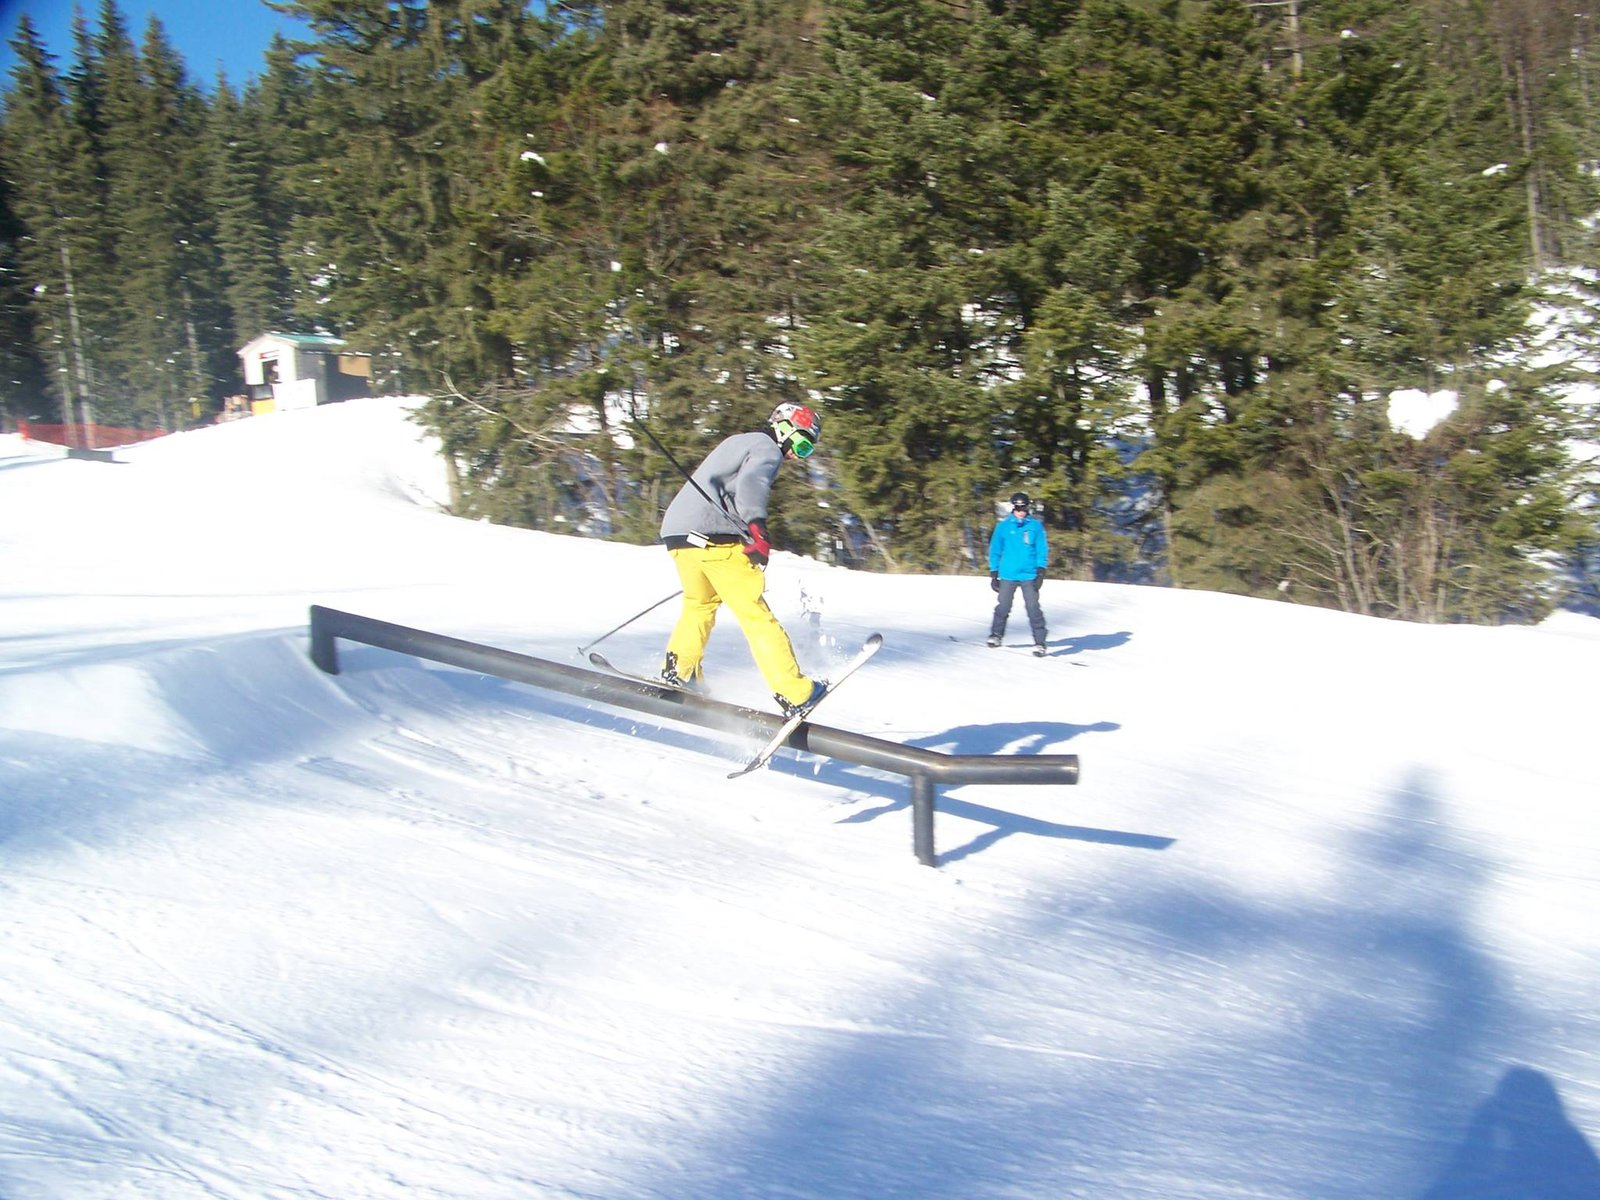 Sunny day at Whitefish